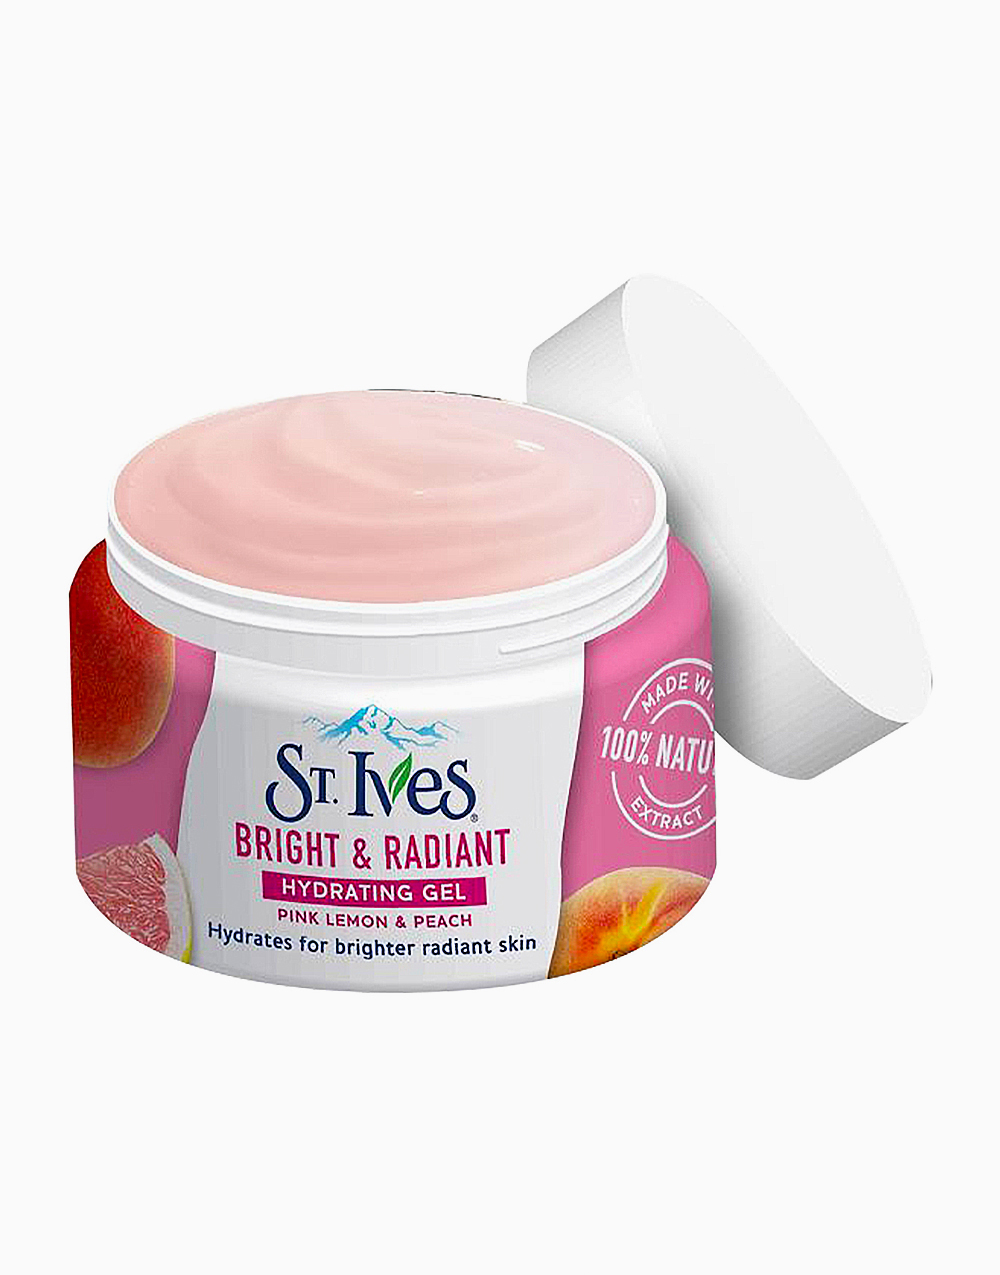 St. Ives Hydrating Gel Bright And Radiant Pink Lemon And Peach (45G) by Unilever Beauty